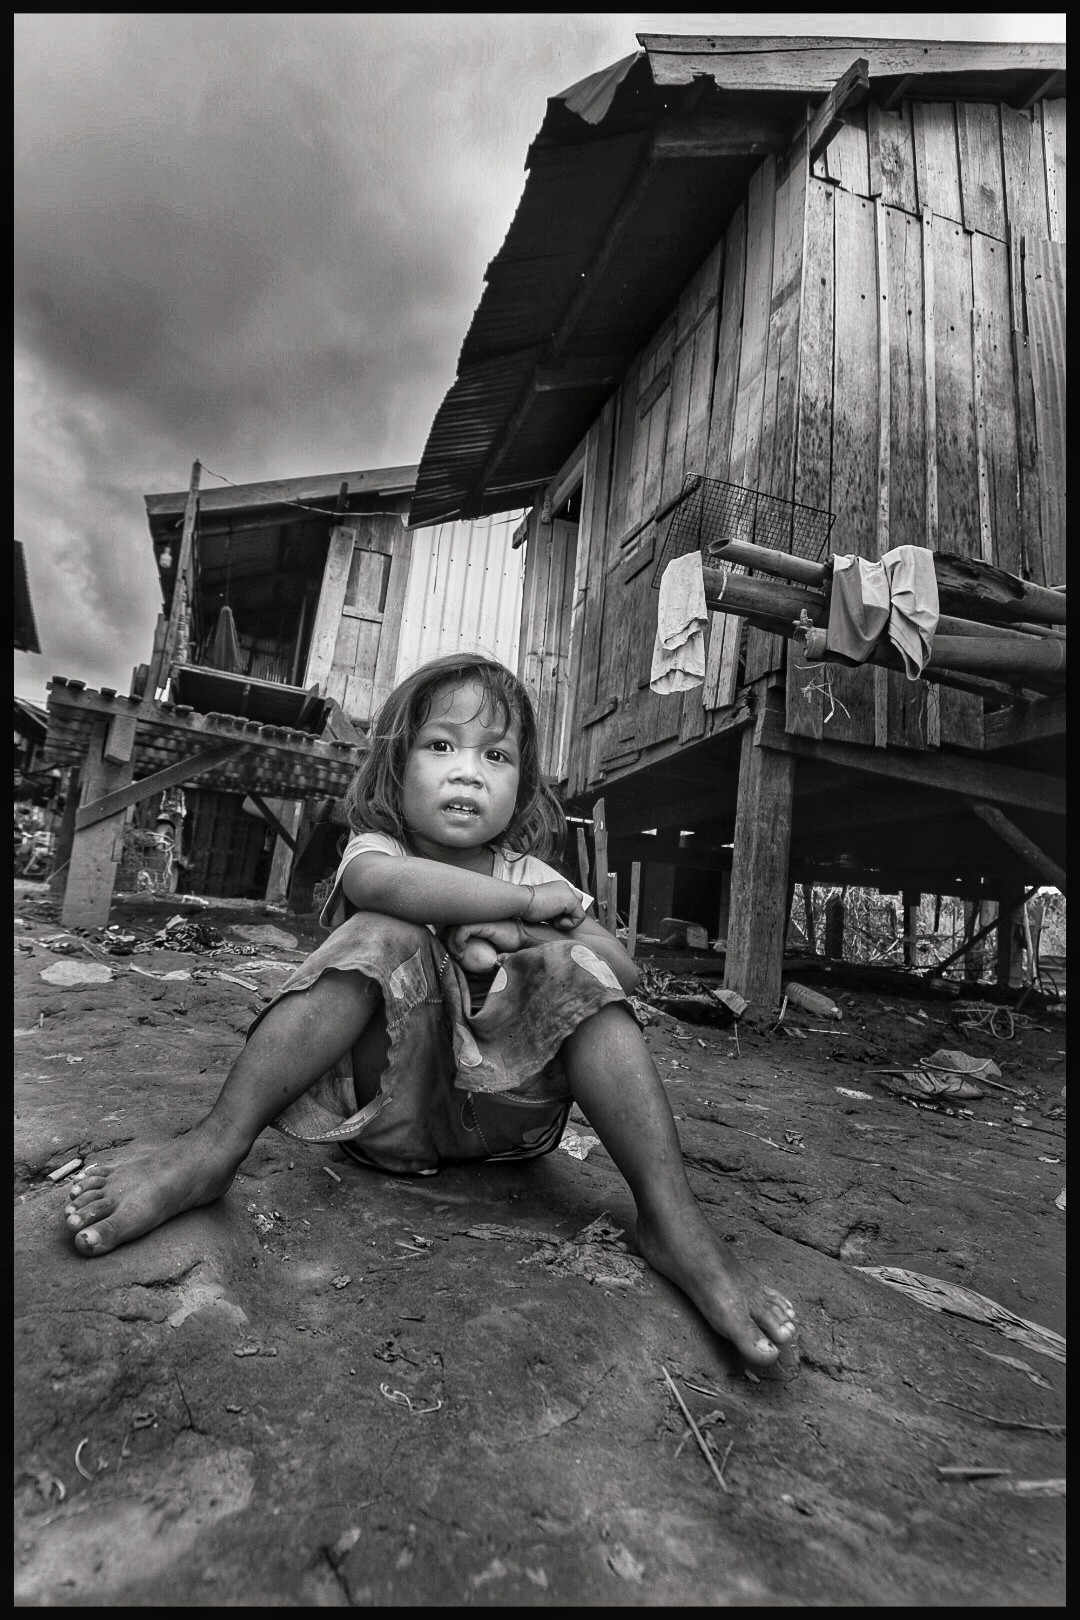 Poverty child Phnom Penh